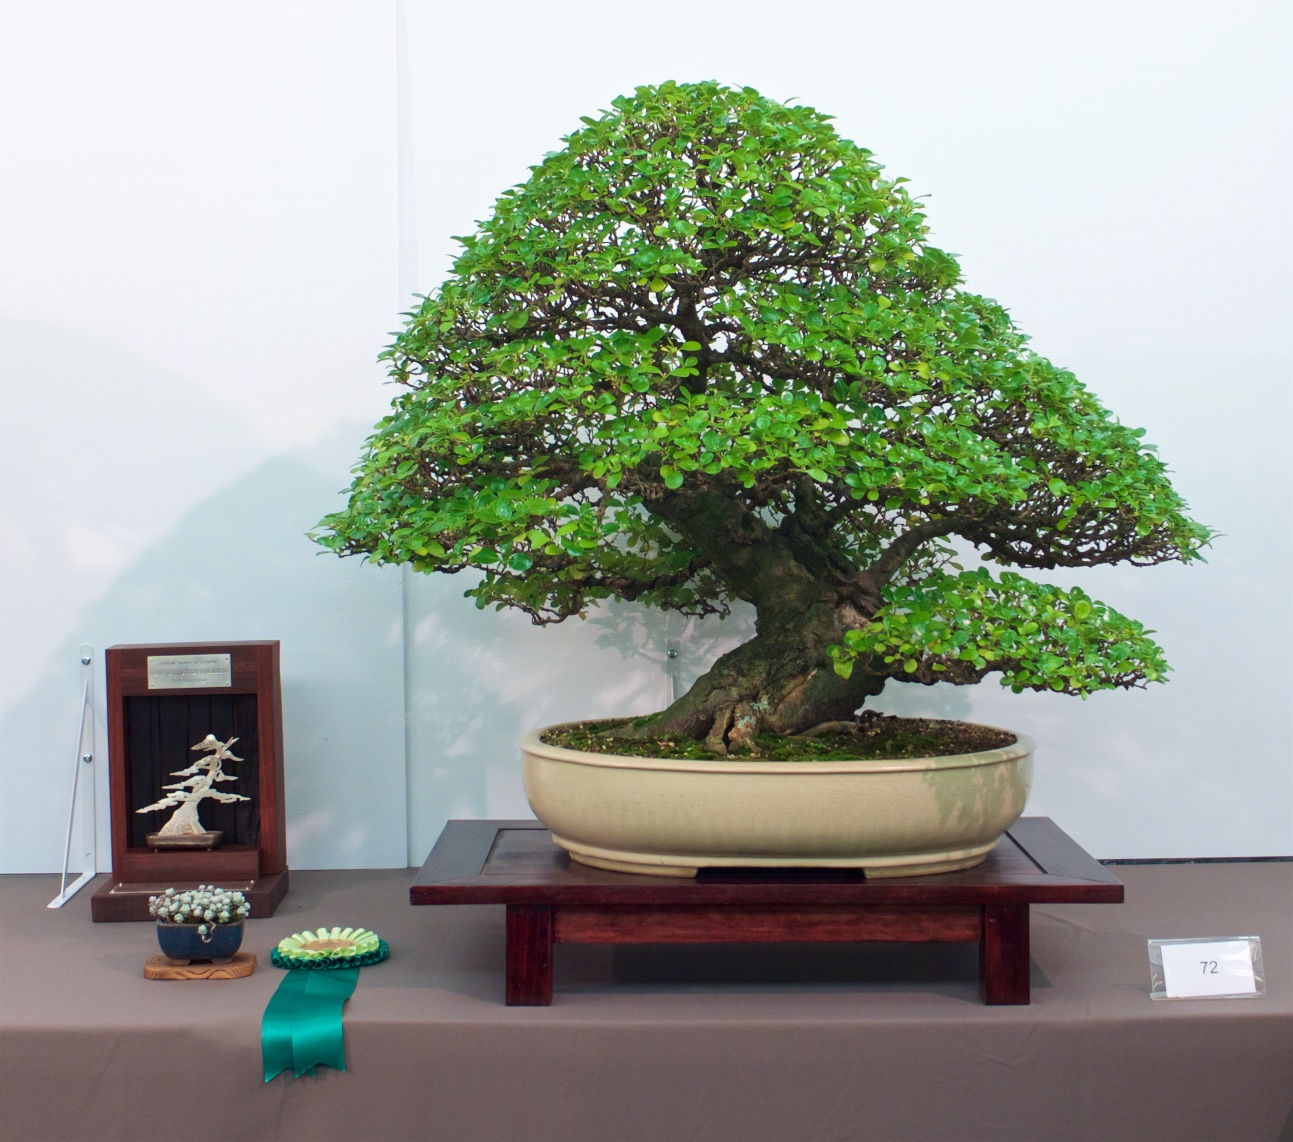 Bonsai Society Of Victoria In Australia